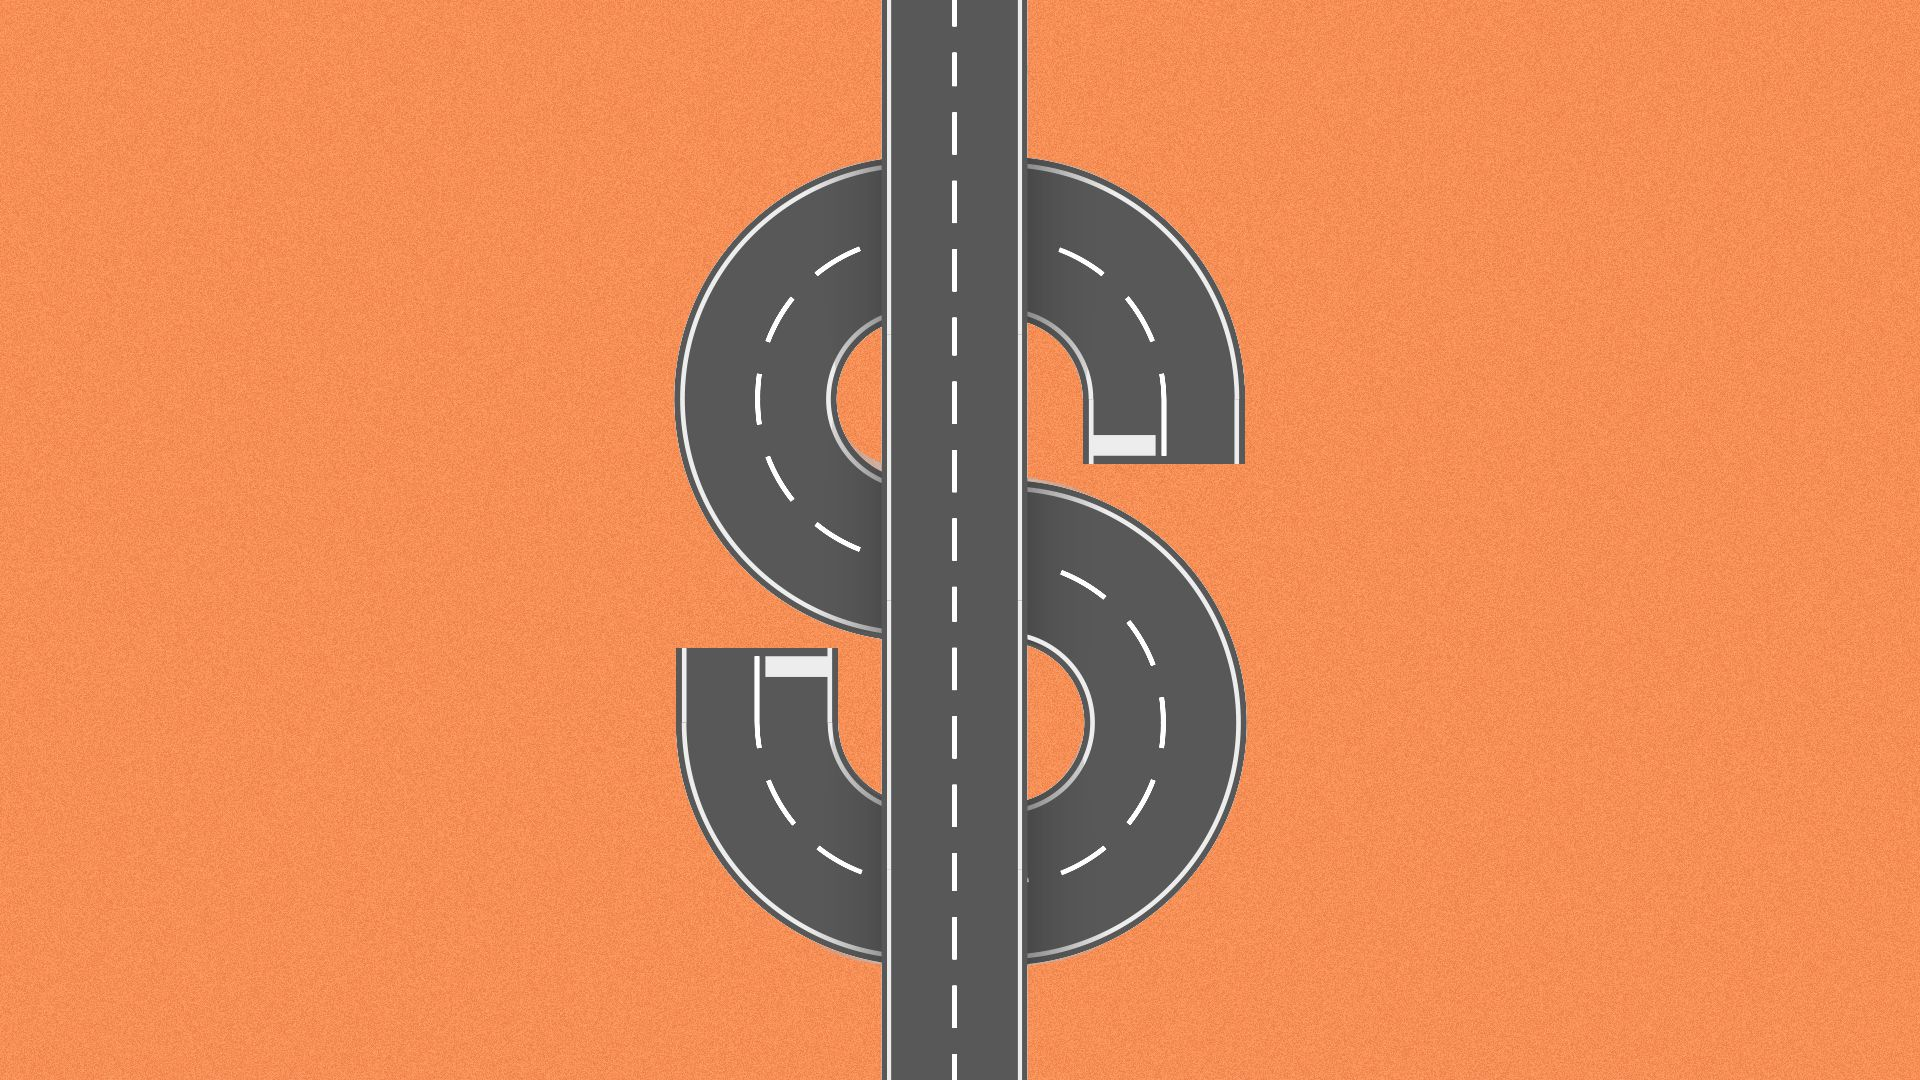 Illustration of a road in the shape of a dollar sign.